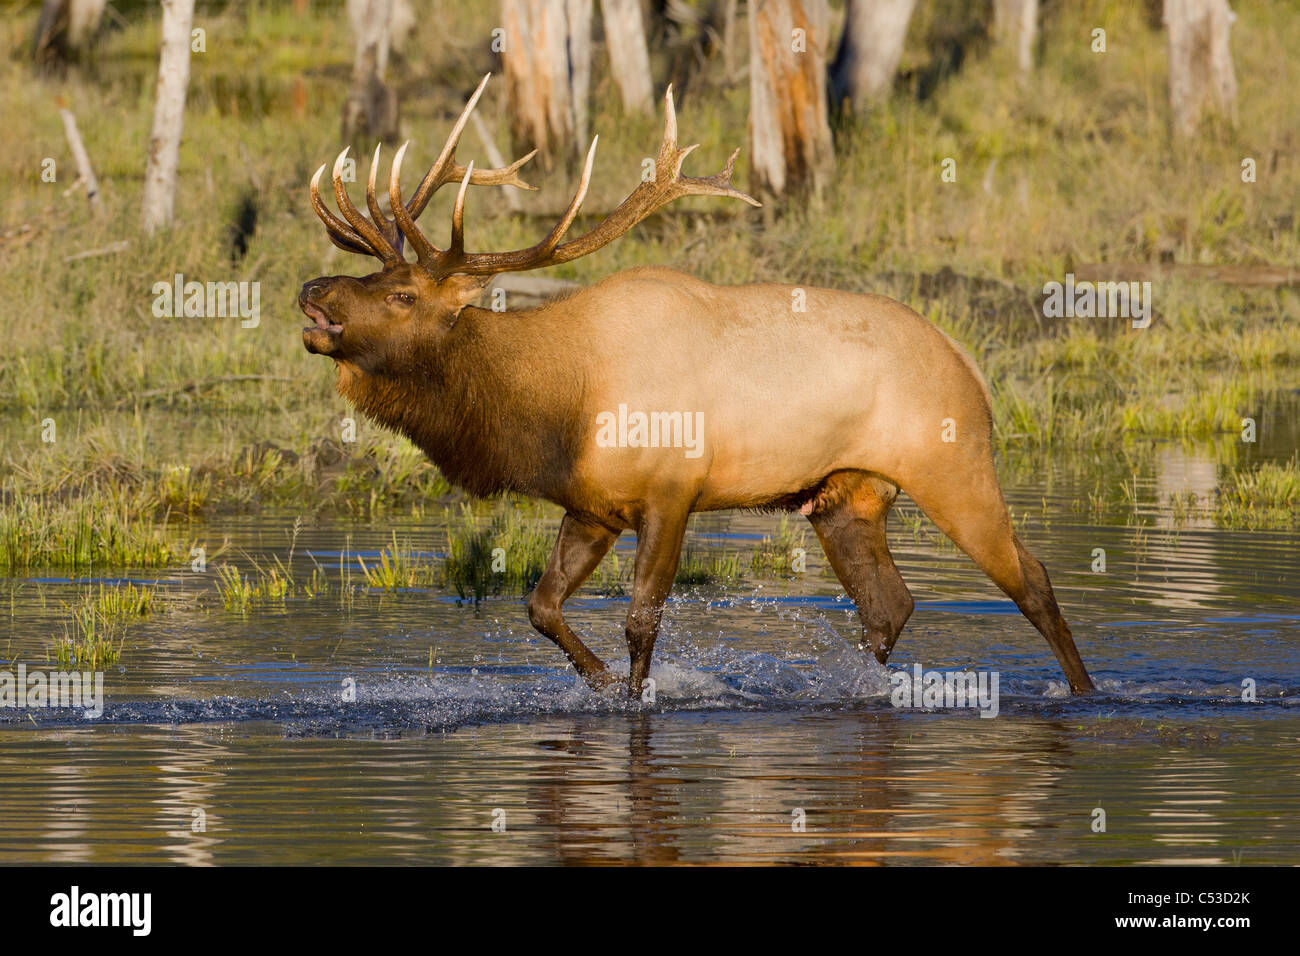 An adult bull Roosevelt elk walks through a pond while bugling, near Portage, Alaska, Autumnm. CAPTIVE - Stock Image